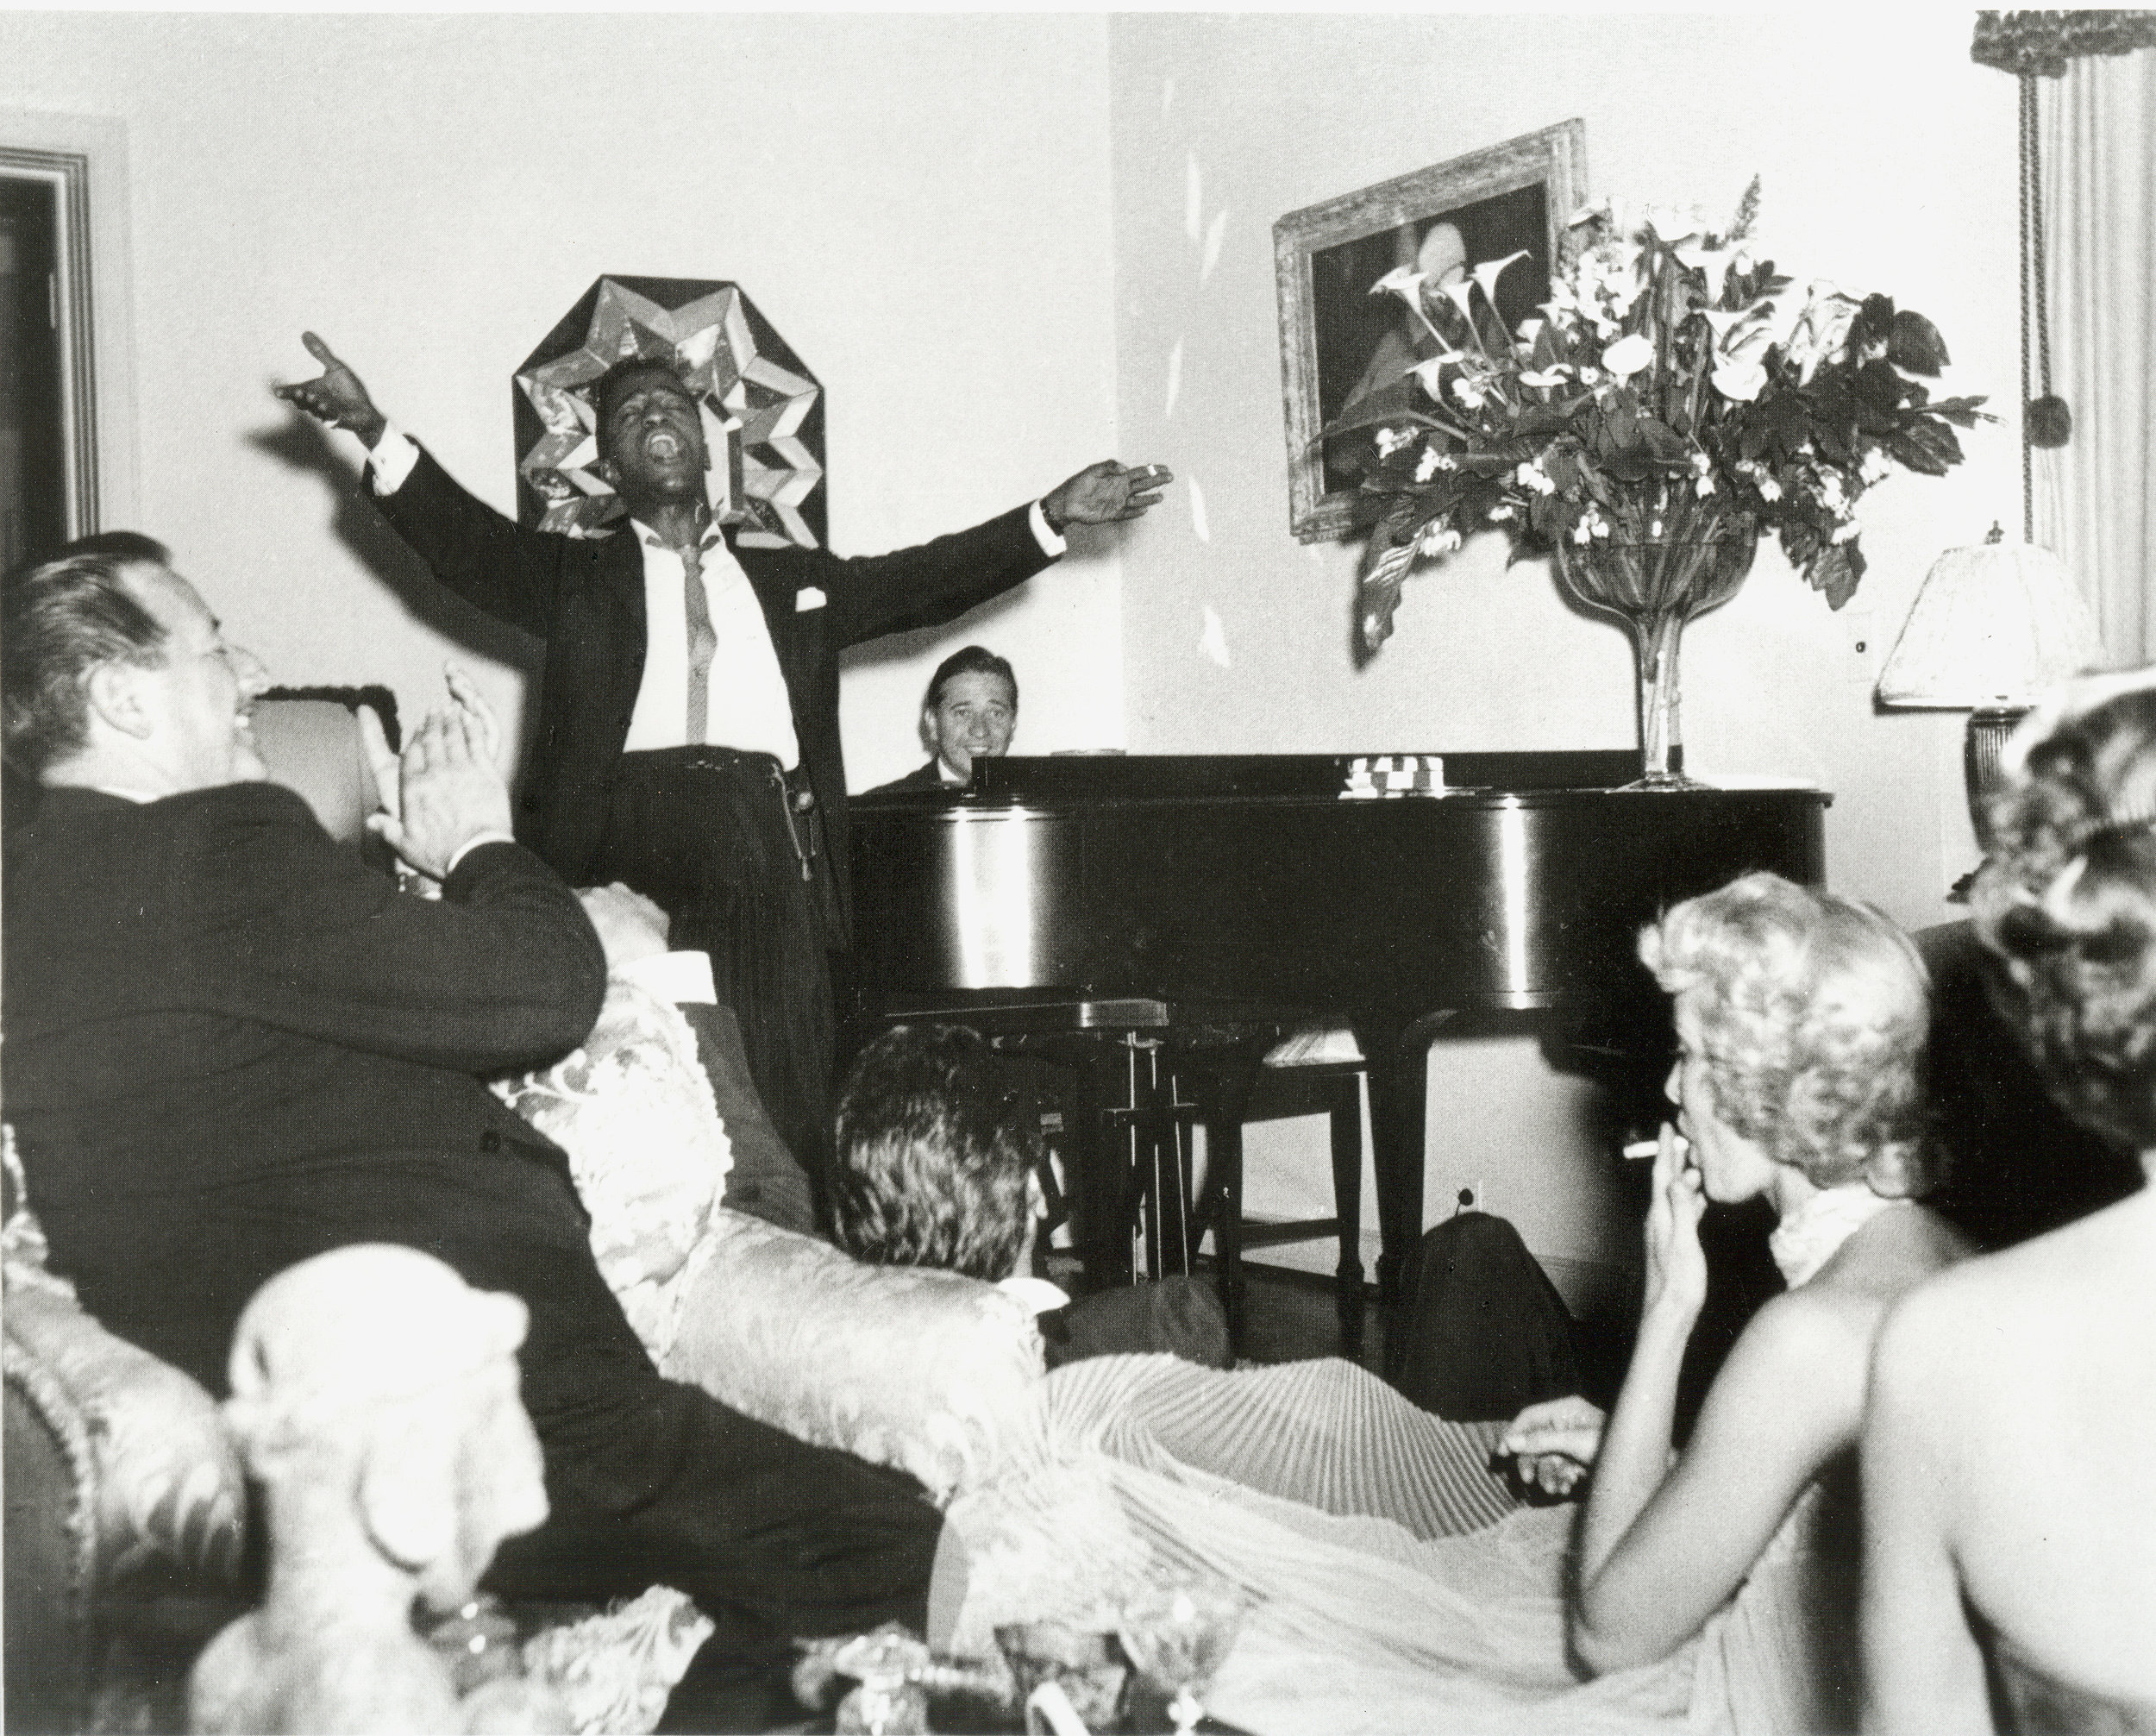 - A party at home… We all had the great pleasure of hearing Sammy Davis jr.seranade us after dinner. He had recently moved to Hollywood and in this photo joined in the after dinner jam sessions that often happened around our piano —making music with some of our friends like Judy Garland, Sinatra or Tony Martin.